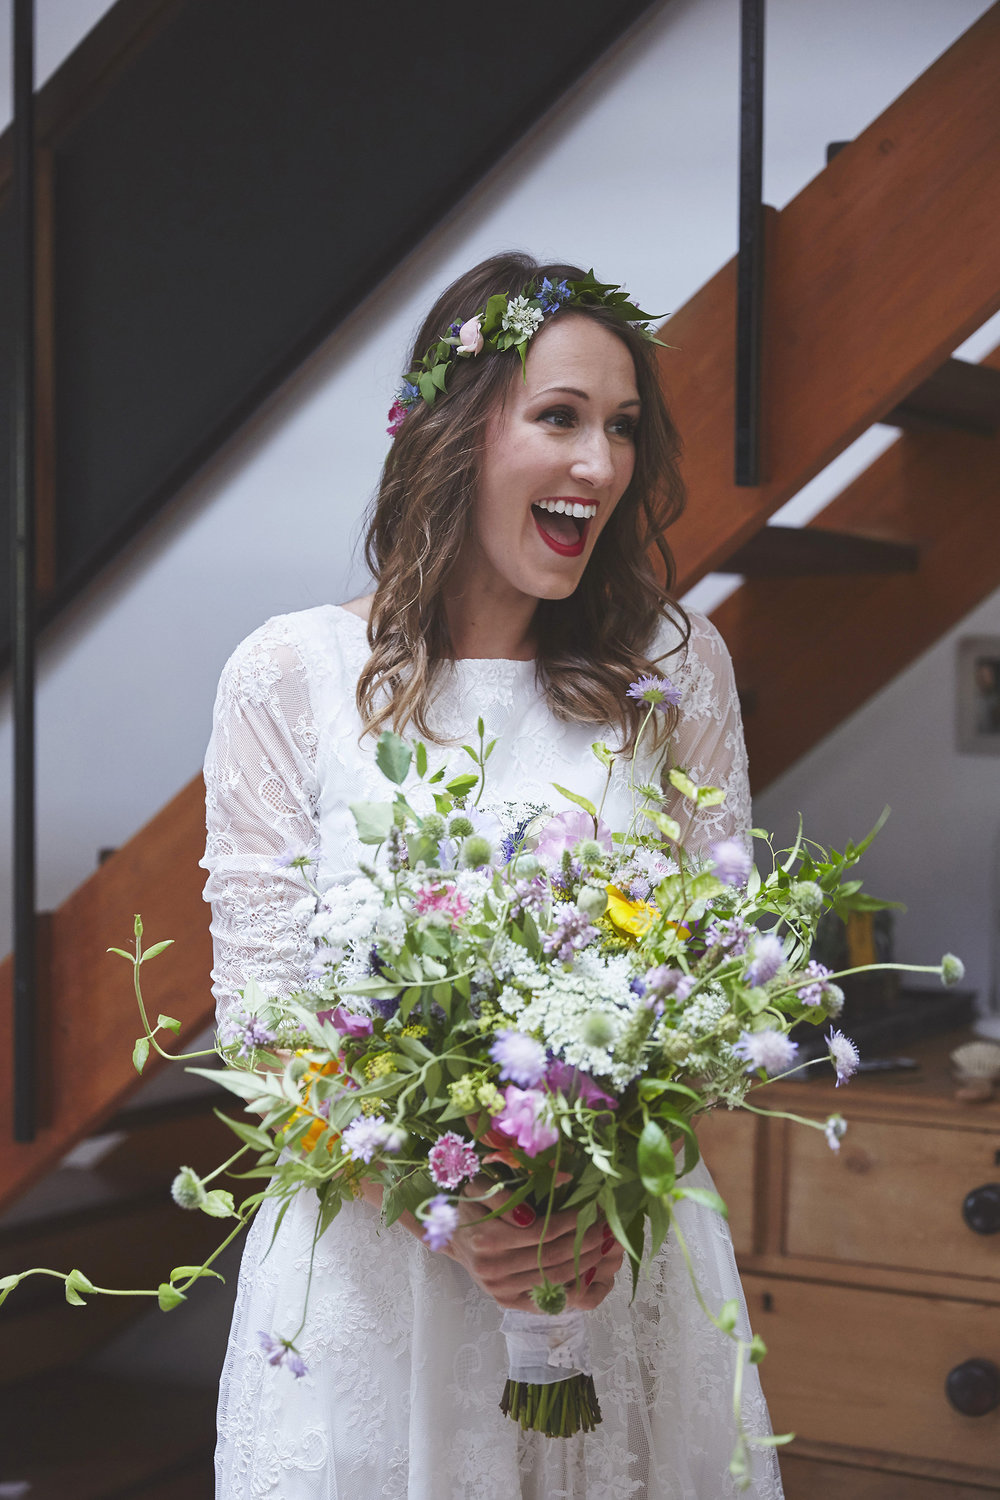 Brides bouquet and flower crown by Tatterfly using all seasonal cut and wild flowers grown at High Ash Farm